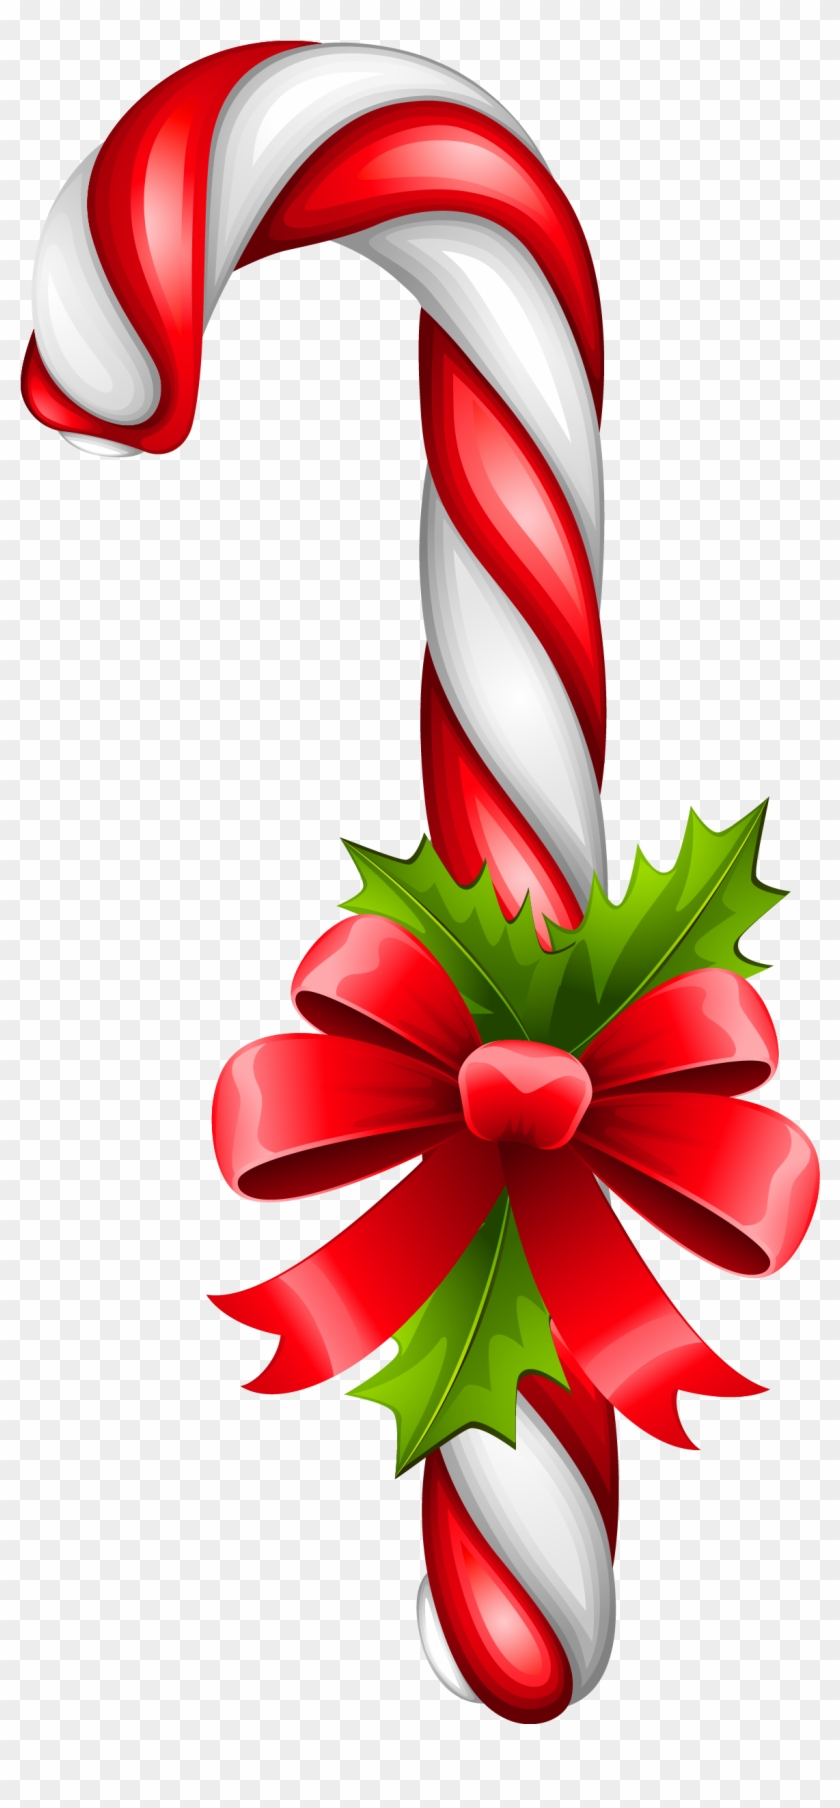 Christmas Candy Clipart - Candy Cane Transparent Background #171244